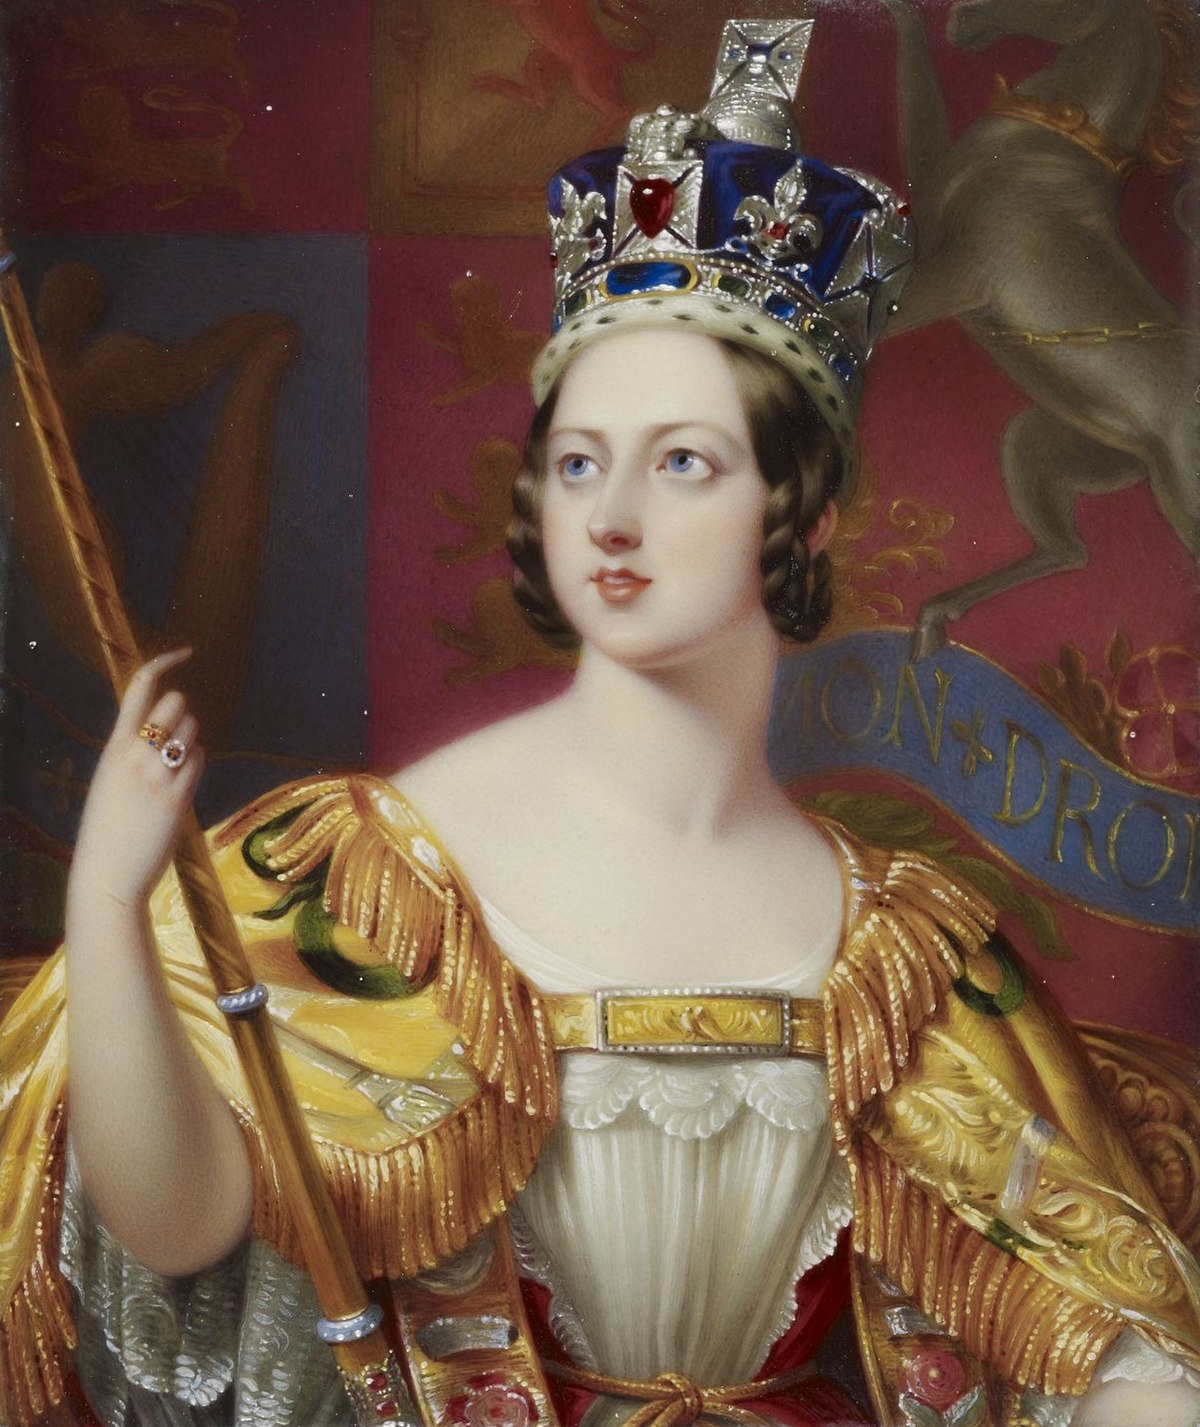 Coronation of Queen Victoria - Wikipedia